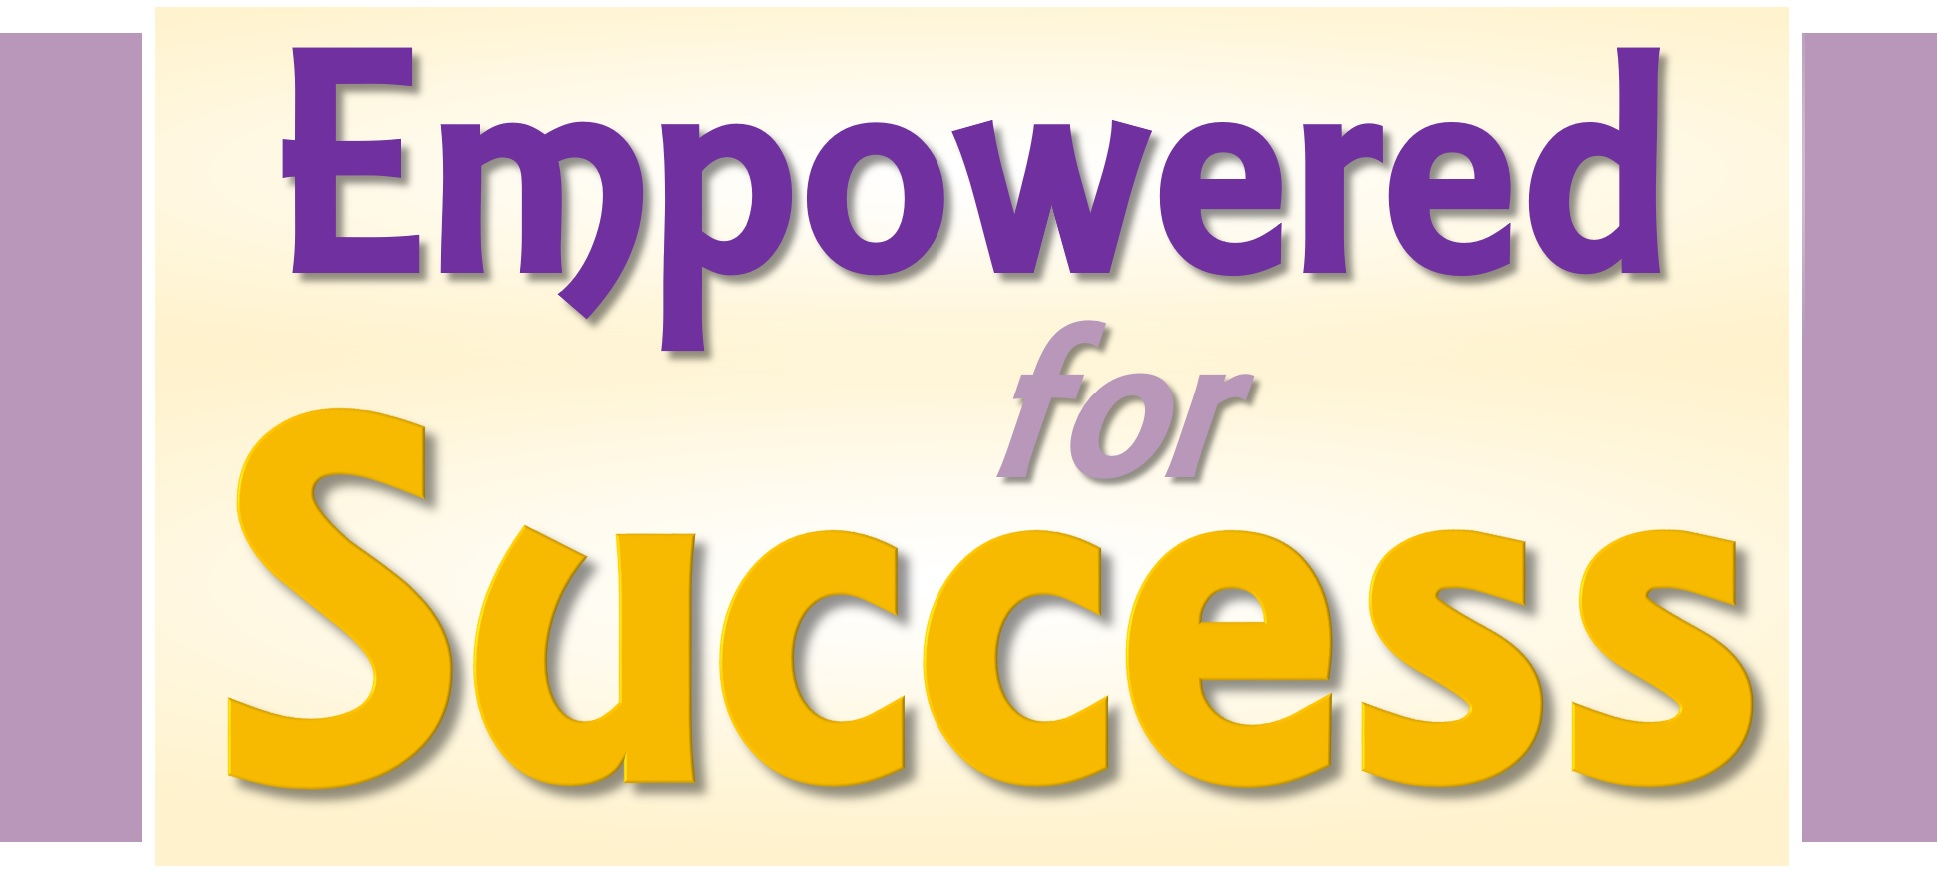 Empowered for Success - Succeed in Your Mind and You Will Succeed in Life!